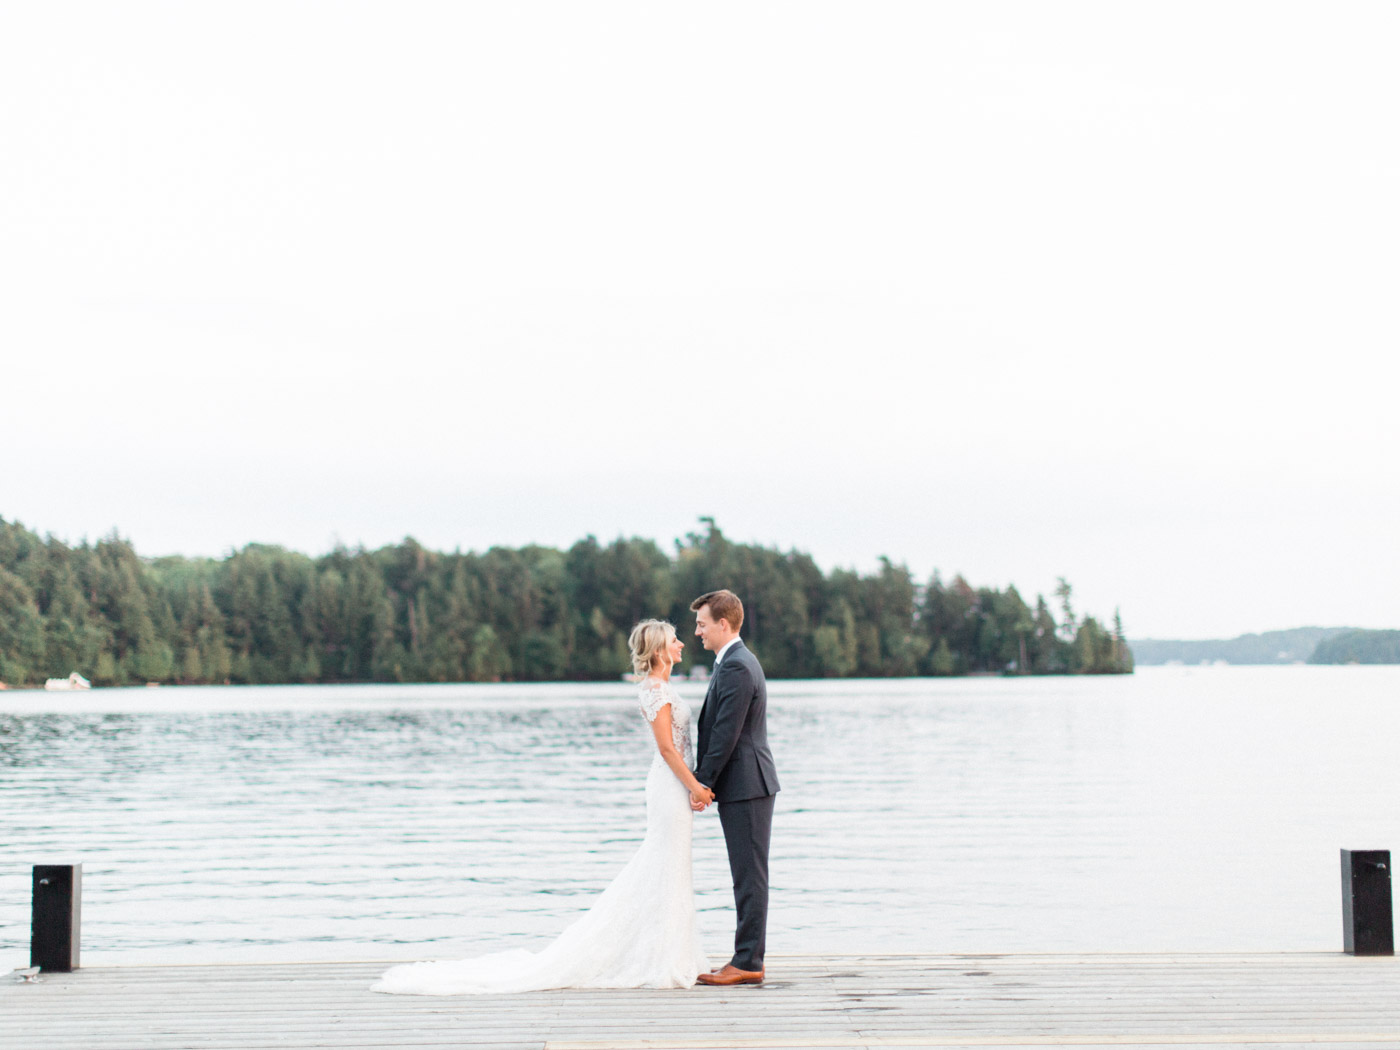 Romantic fine art wedding photography portrait of the bride and groom by the beach at sunset.  Captured by Muskoka wedding photographer Corynn Fowler Photography.